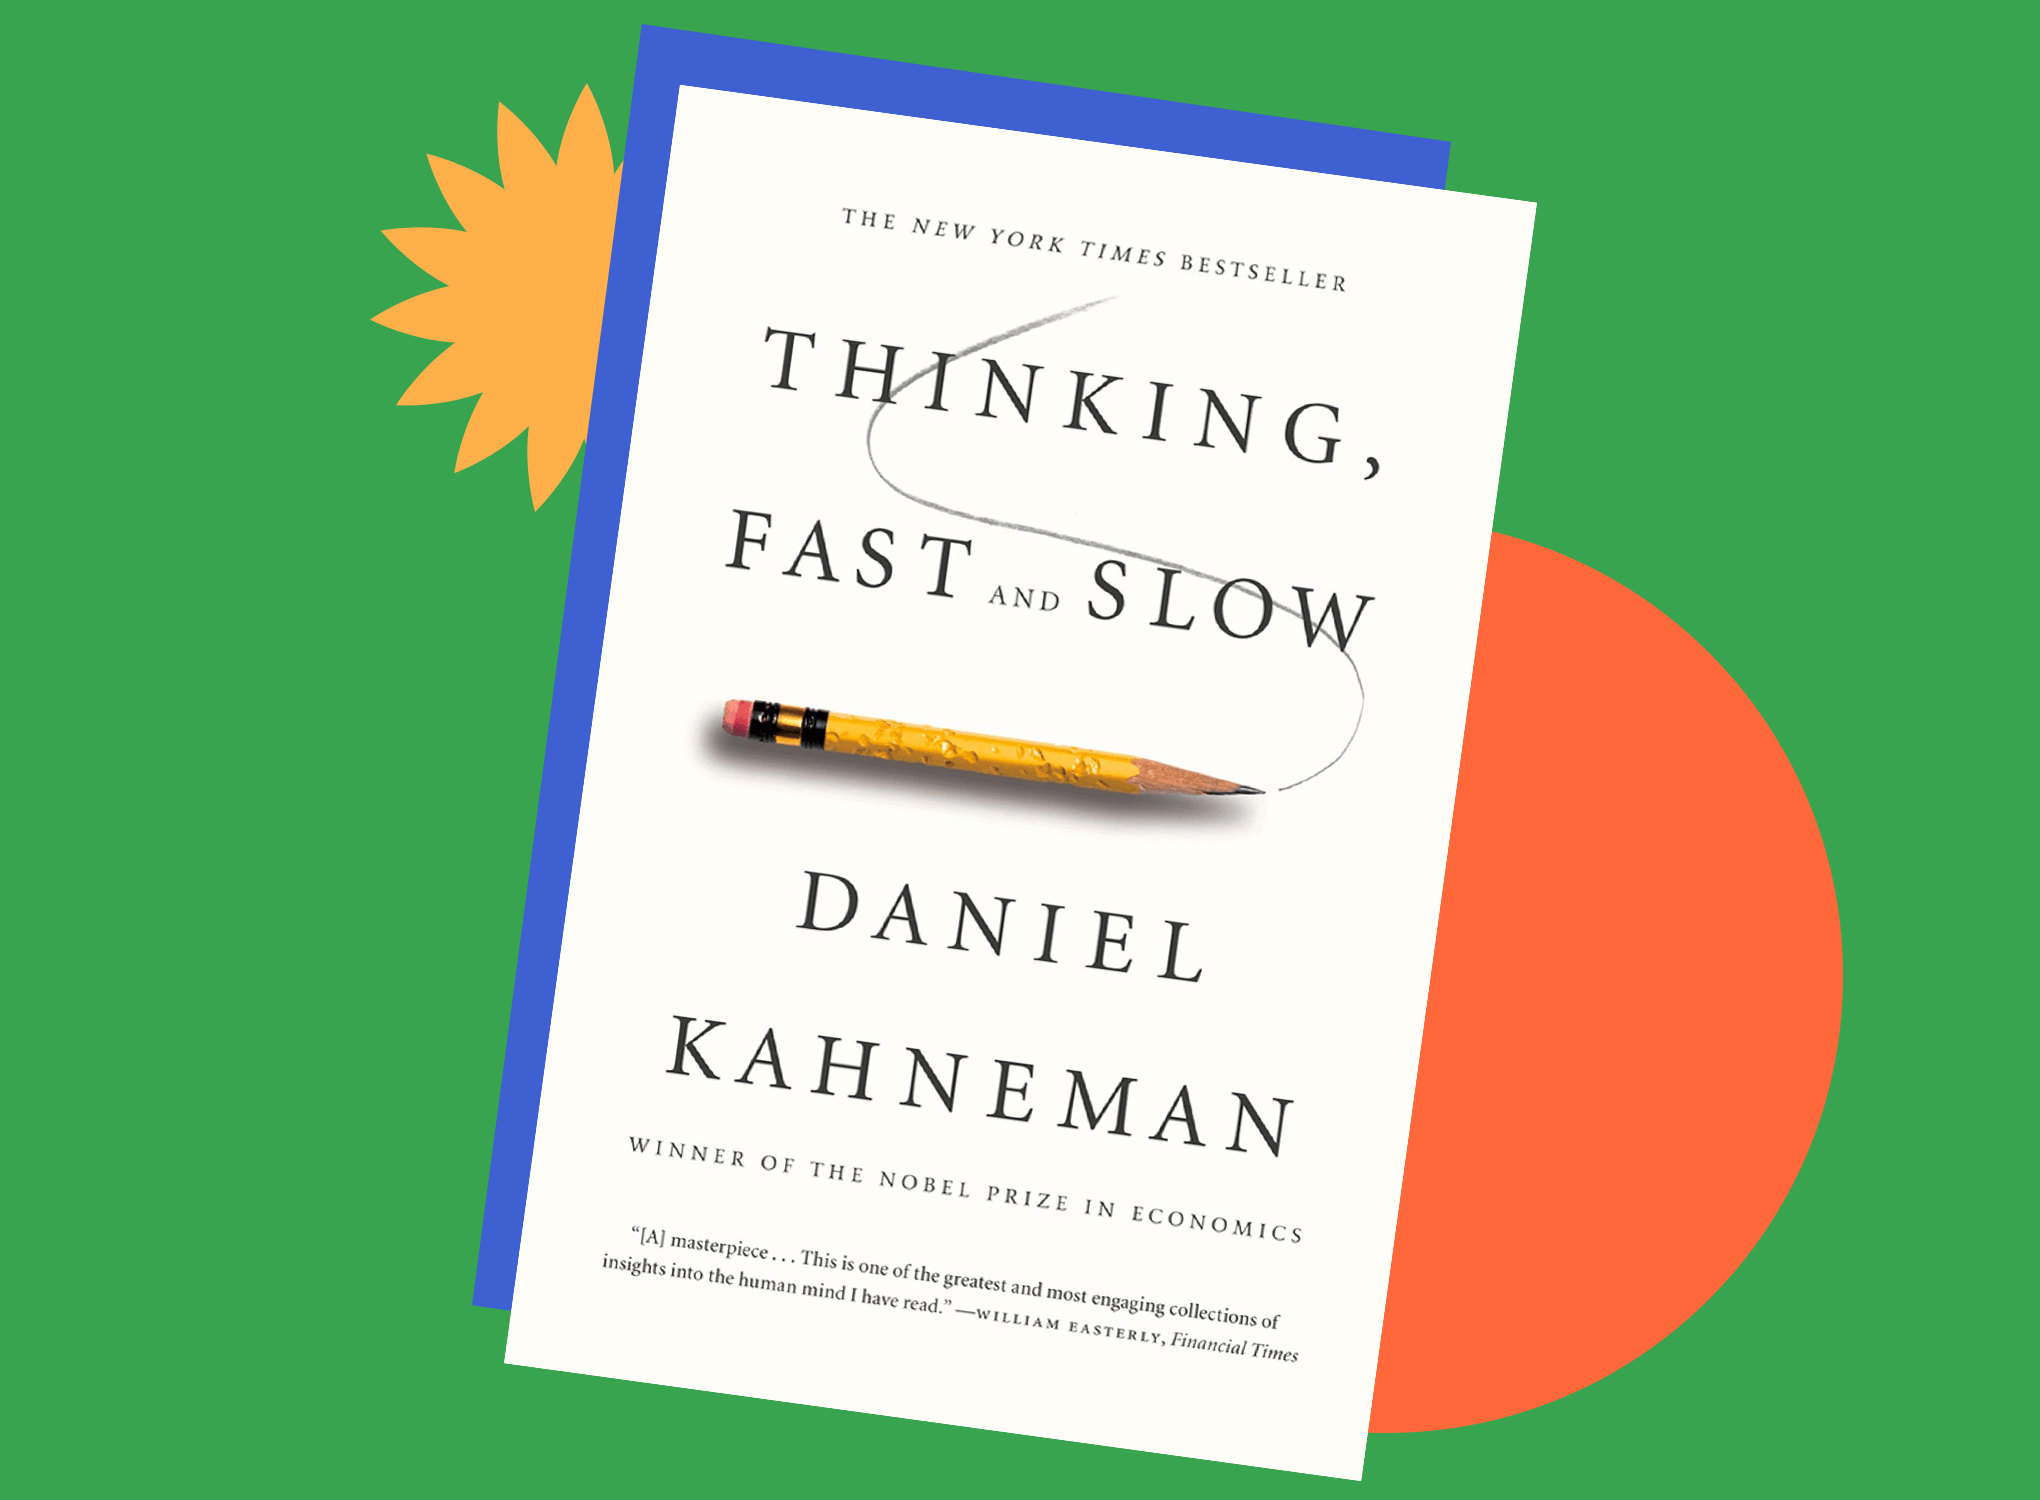 Book jacket cover for Thinking, Fast and Slow by Daniel Kahneman